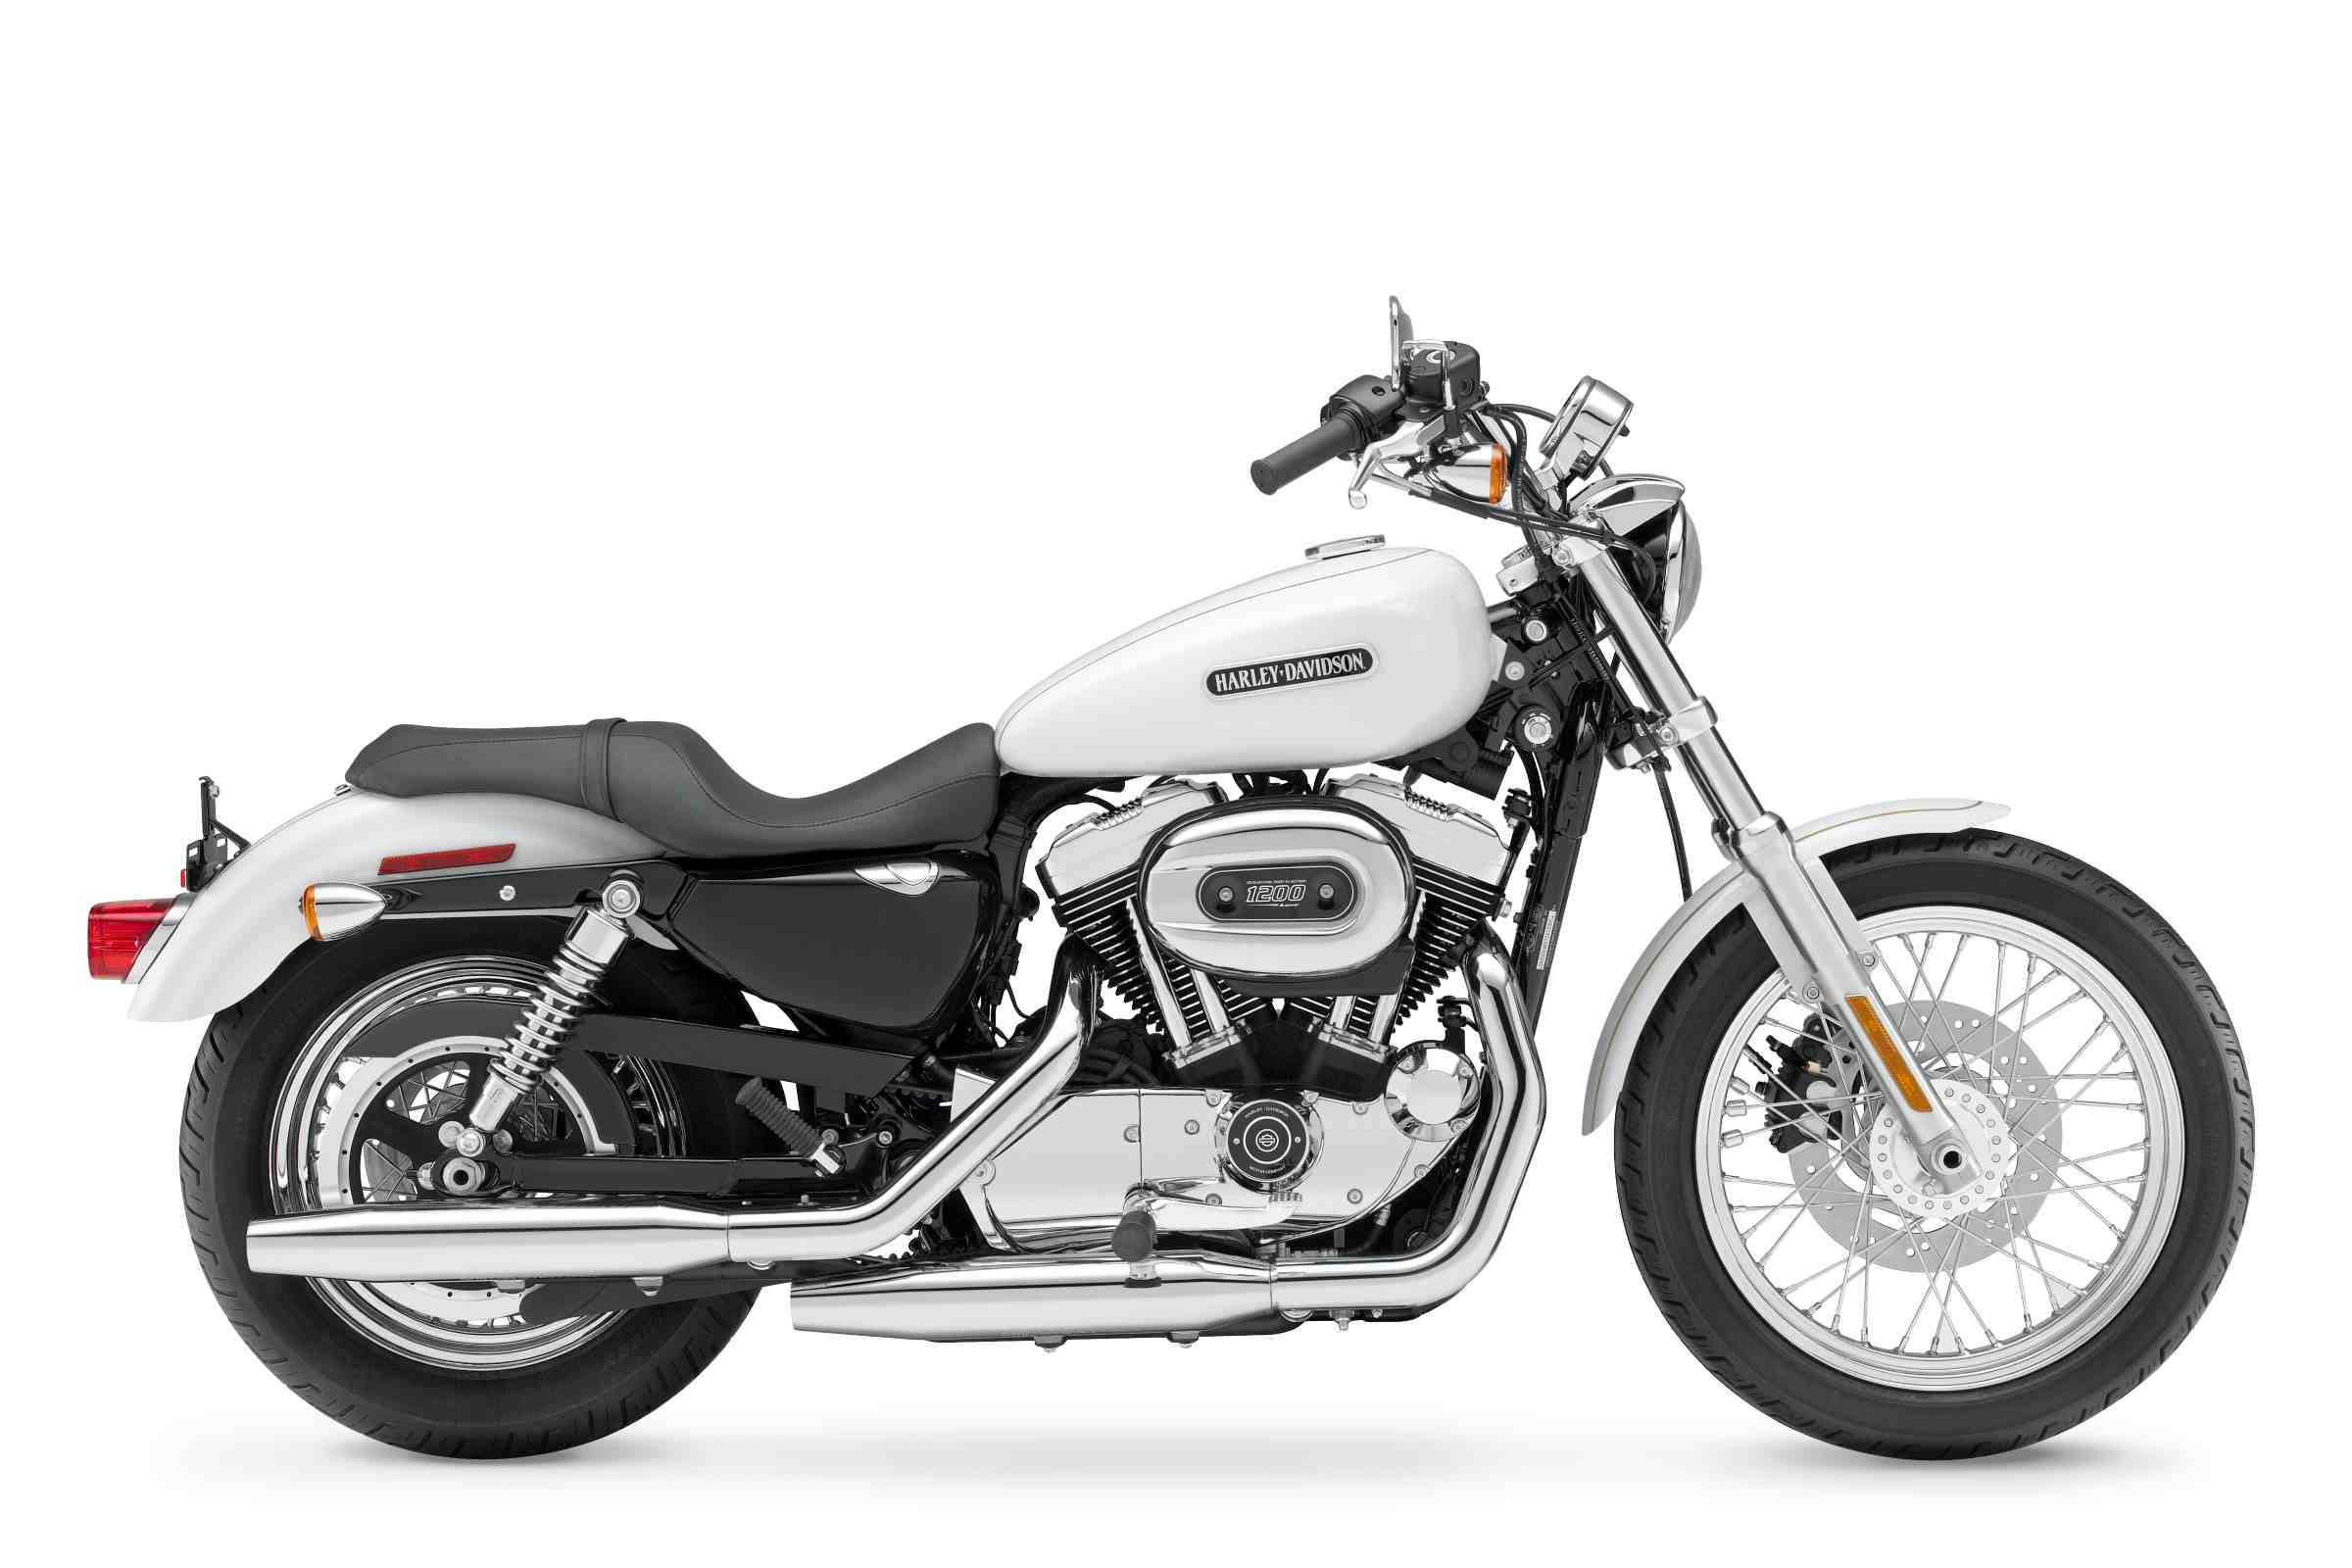 2008 Harley-Davidson Lineup Gallery and Buyer's Guide